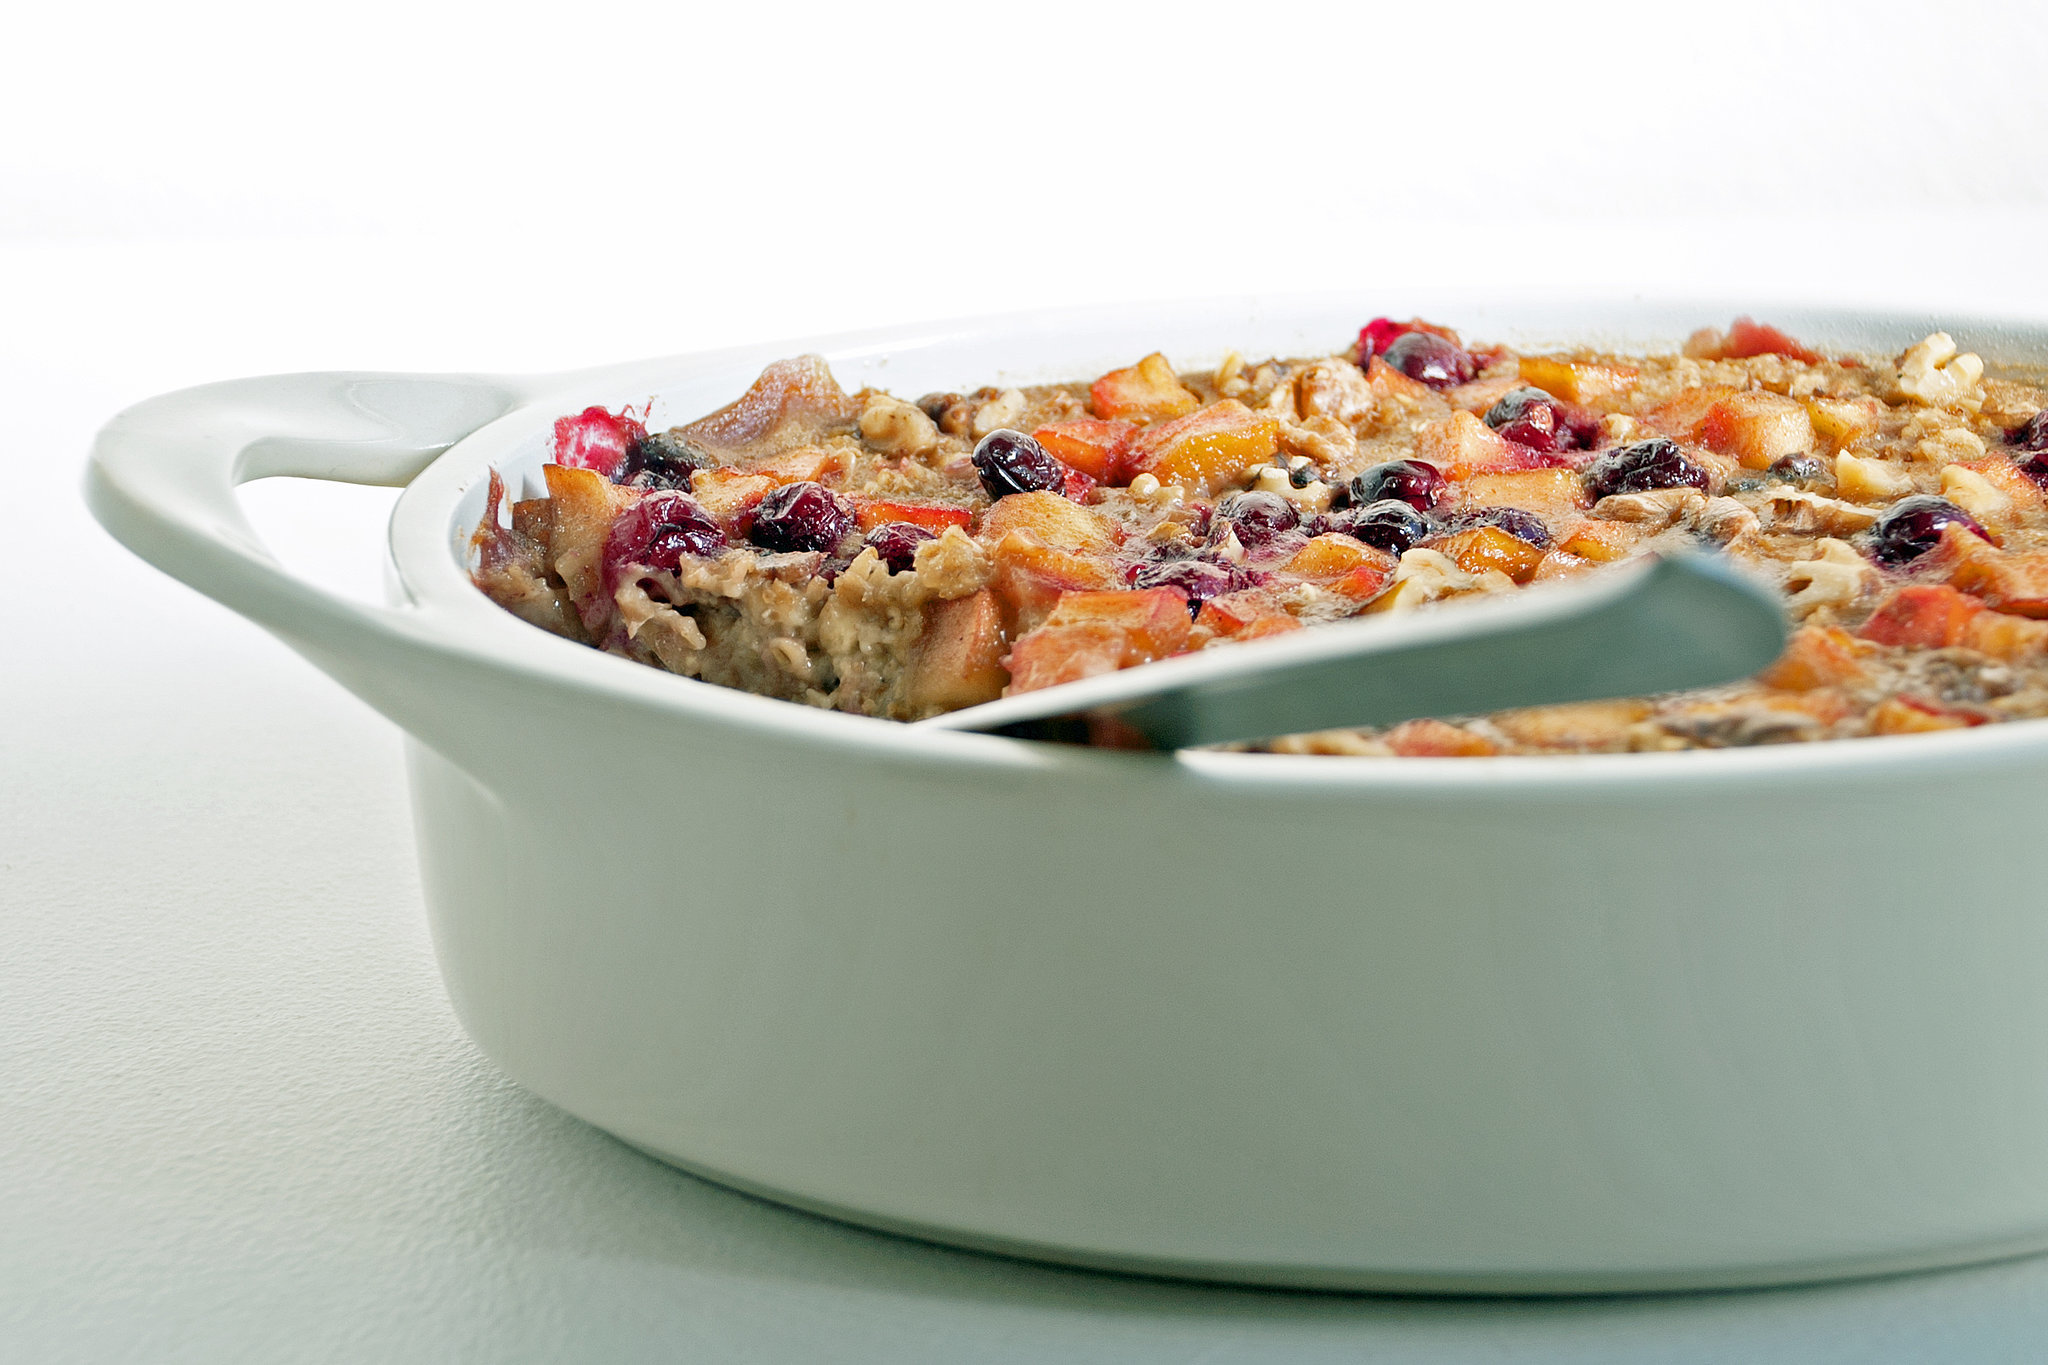 Cranberry-Apple Baked Oatmeal